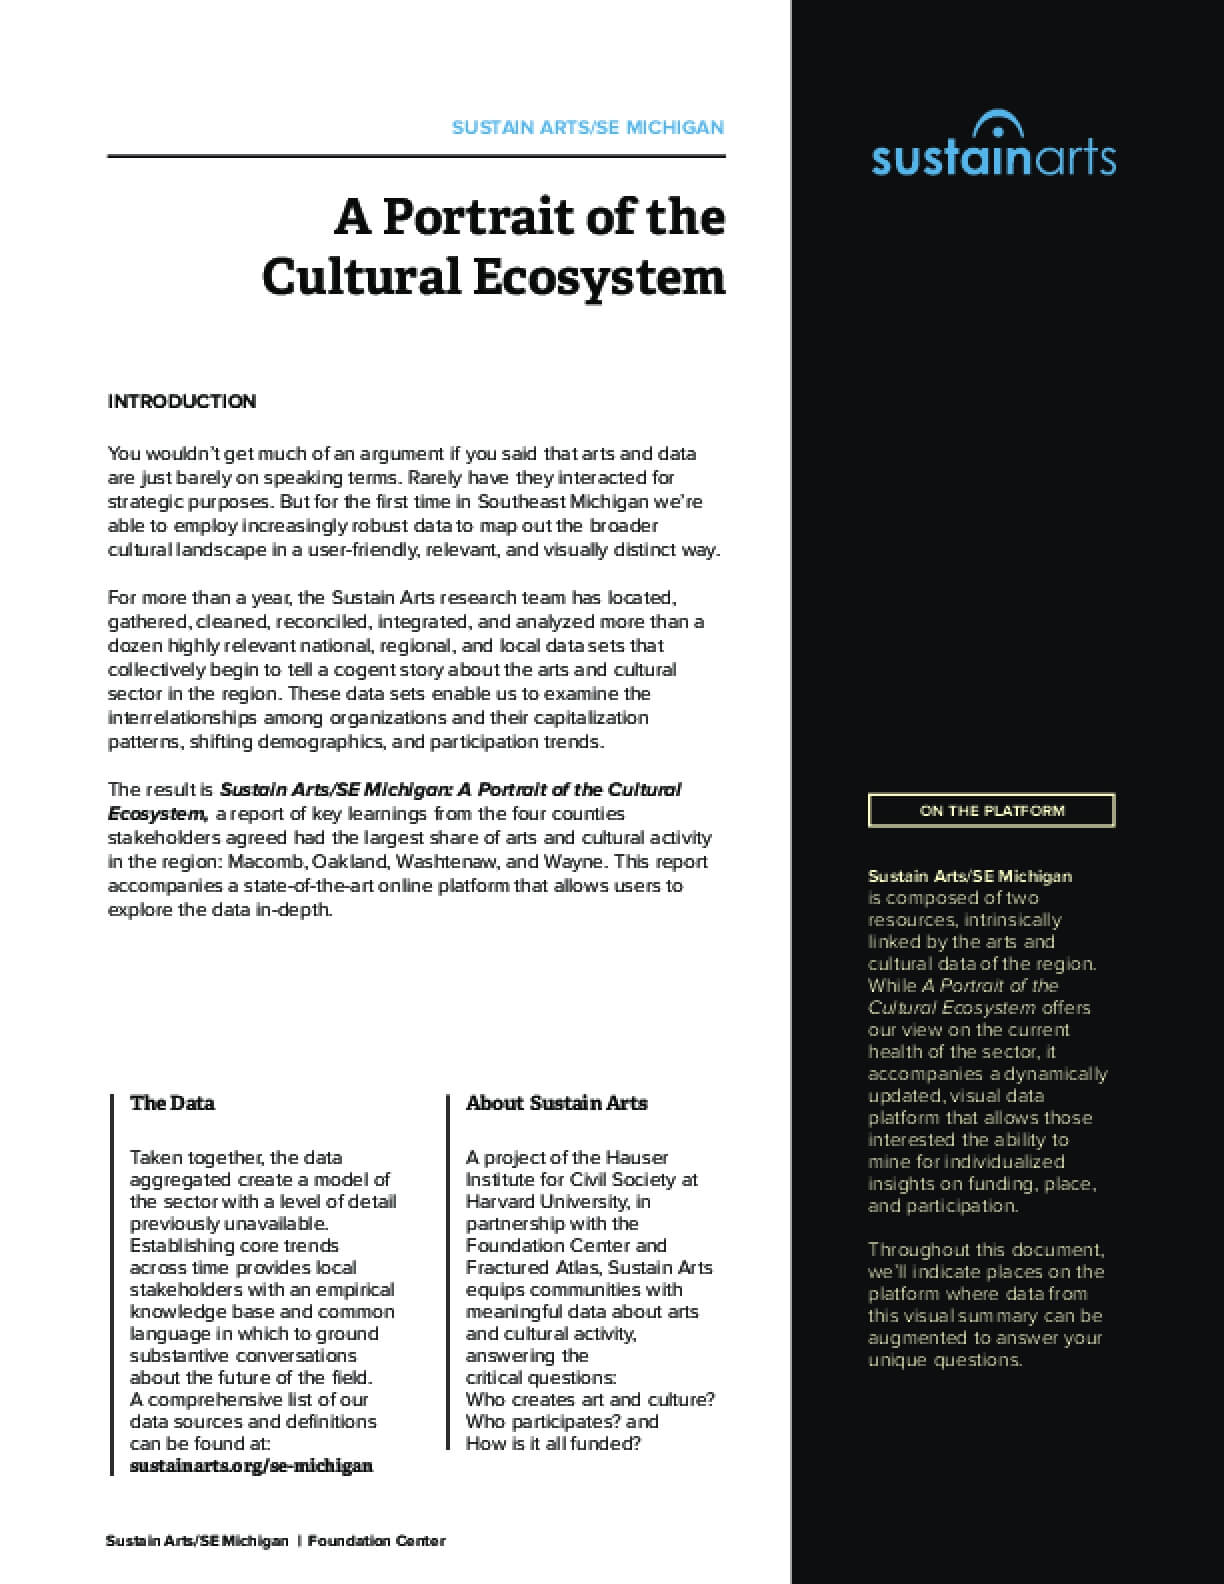 Sustain Arts/SE Michigan: A Portrait of the Cultural Ecosystem - Key Findings